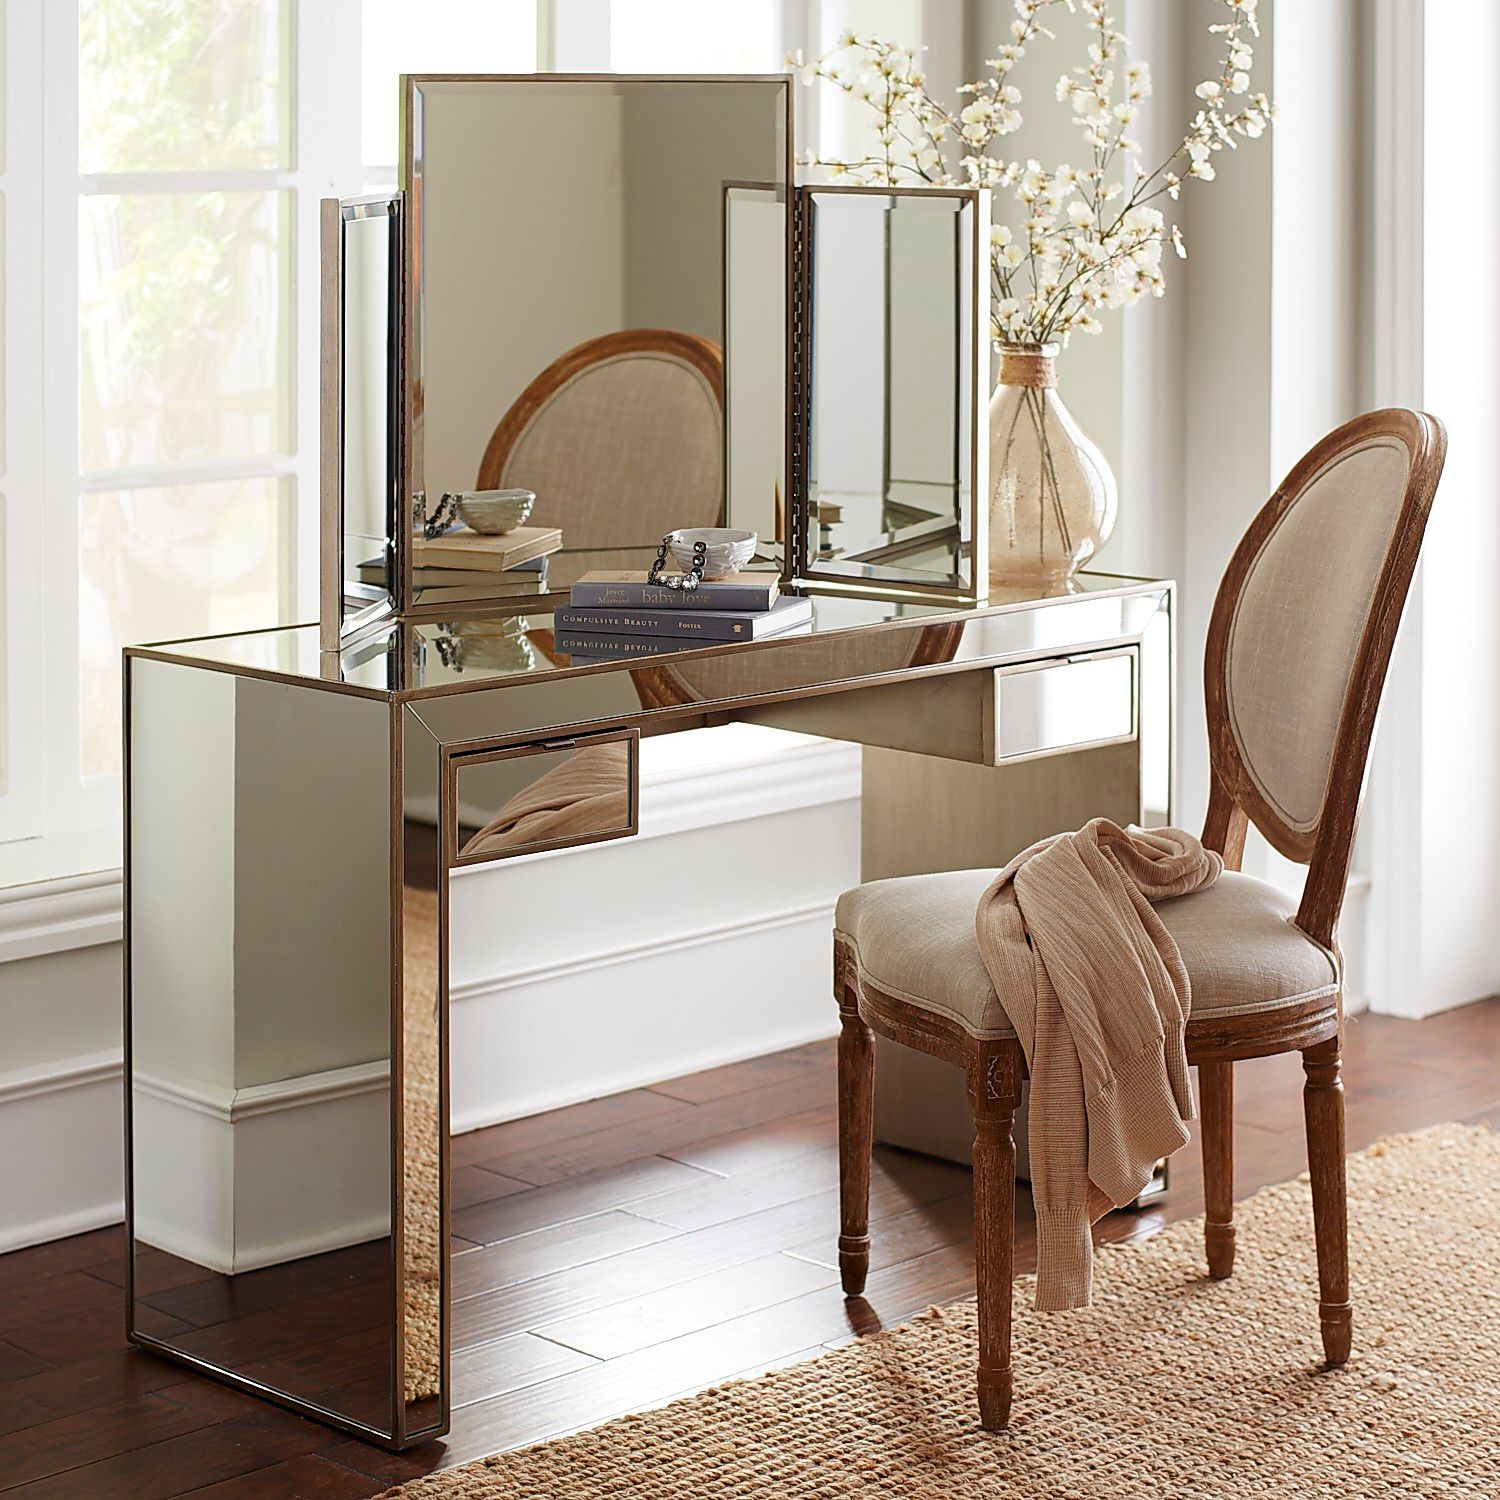 alexa mirrored vanity pier imports accent table small white cube cool retro furniture wood dining and chairs patchwork runner patterns modern glass coffee solid farm all weather